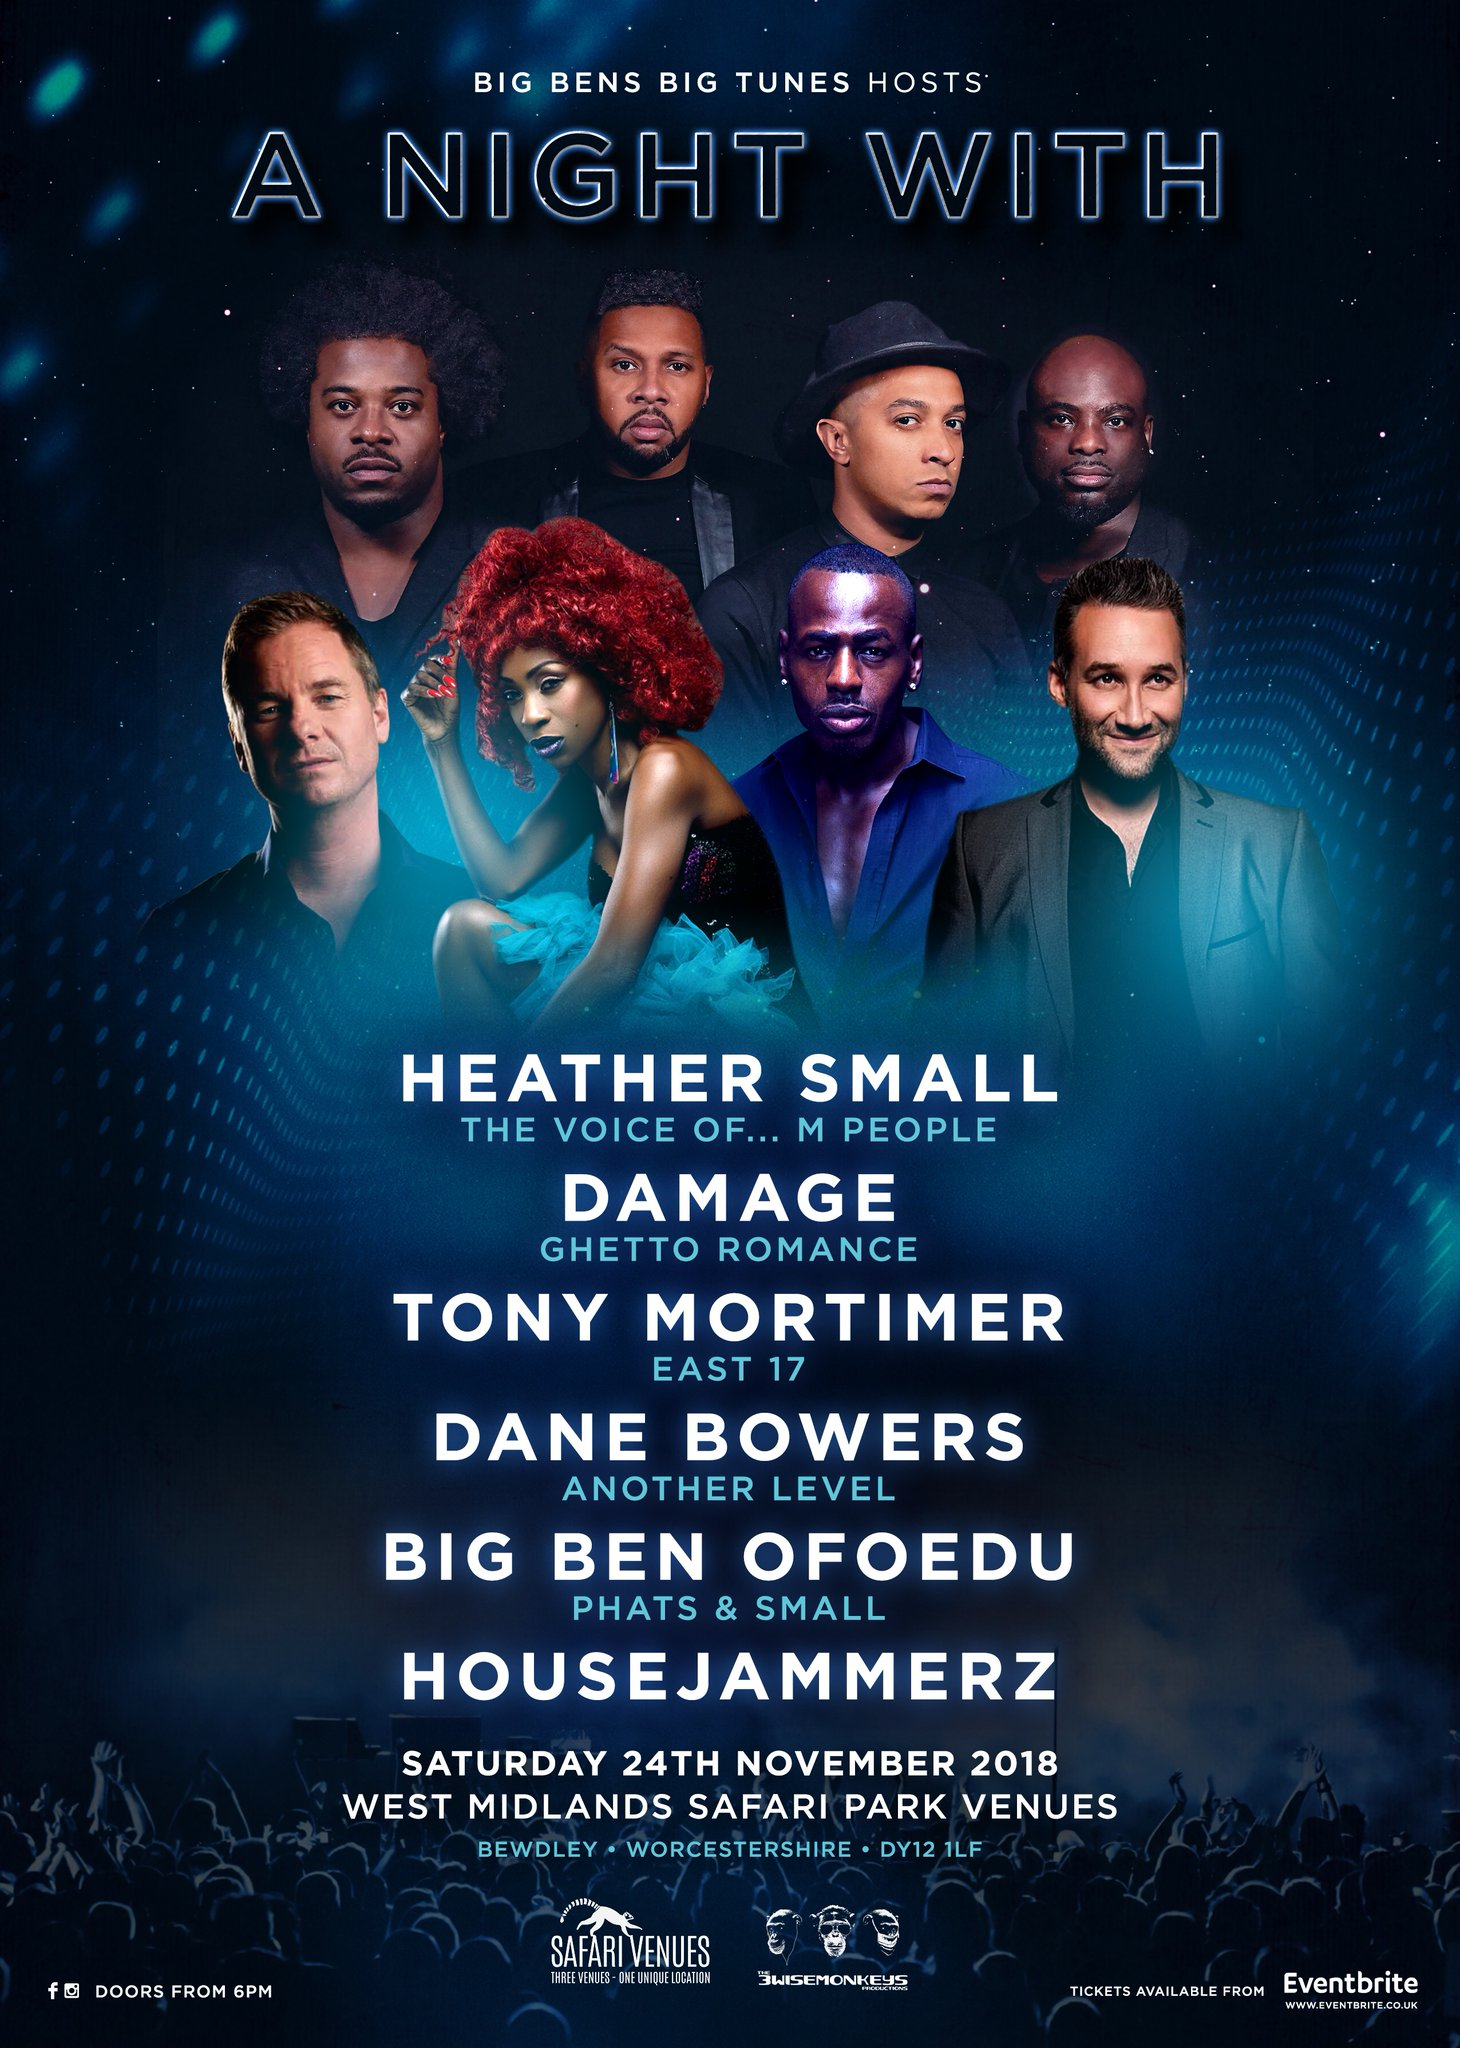 Heather Small To Perform At West Midlands Safari Park Event